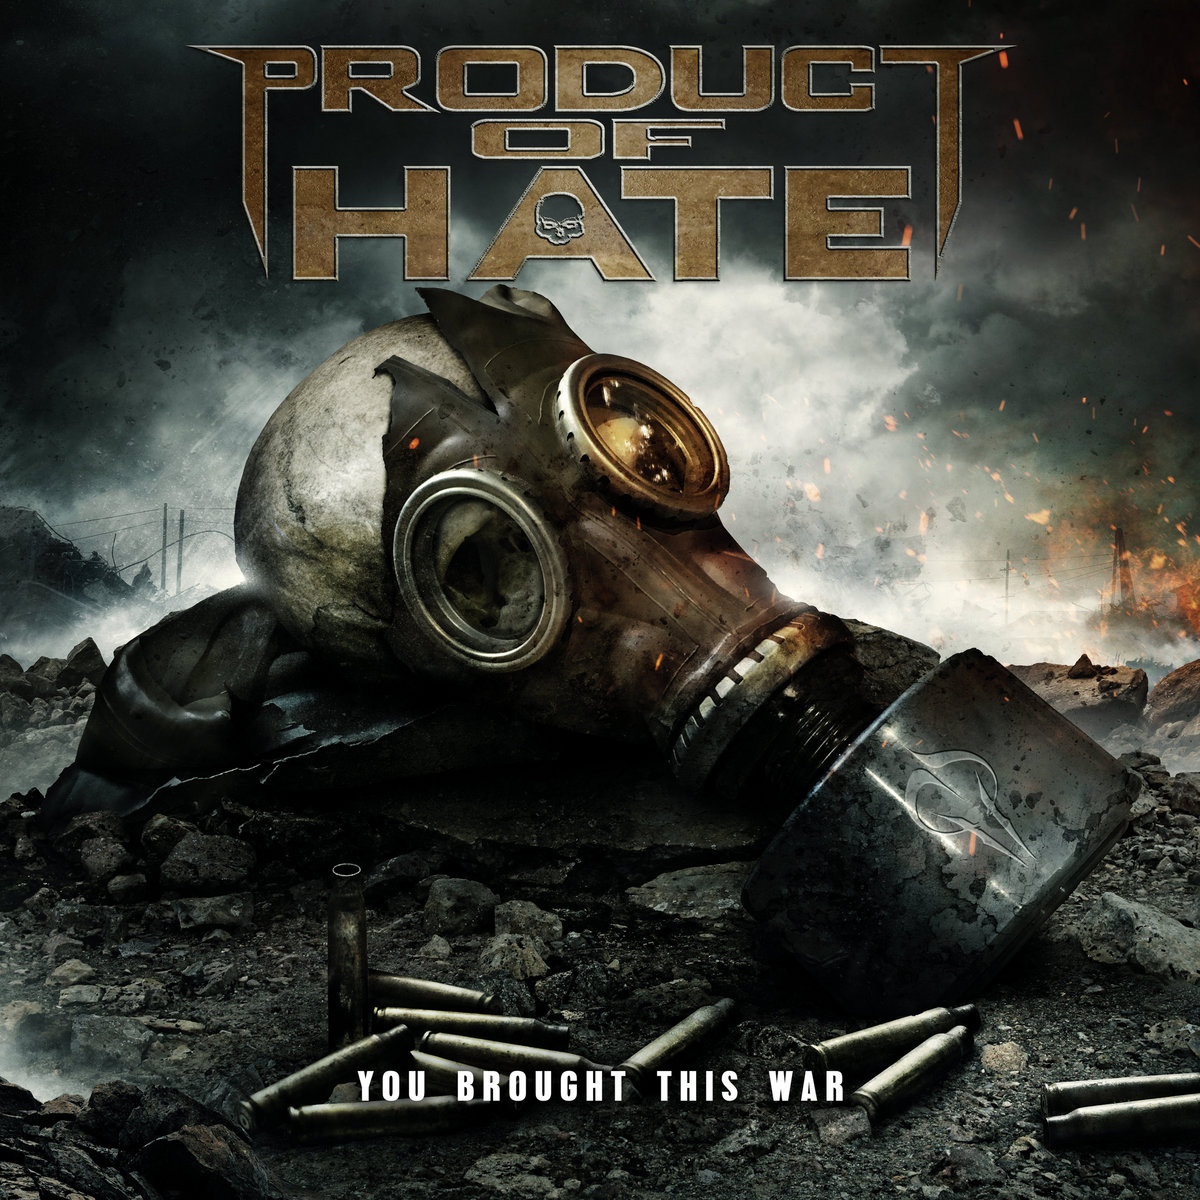 You Brought This War PRODUCT OF HATE Album Cover Artwork